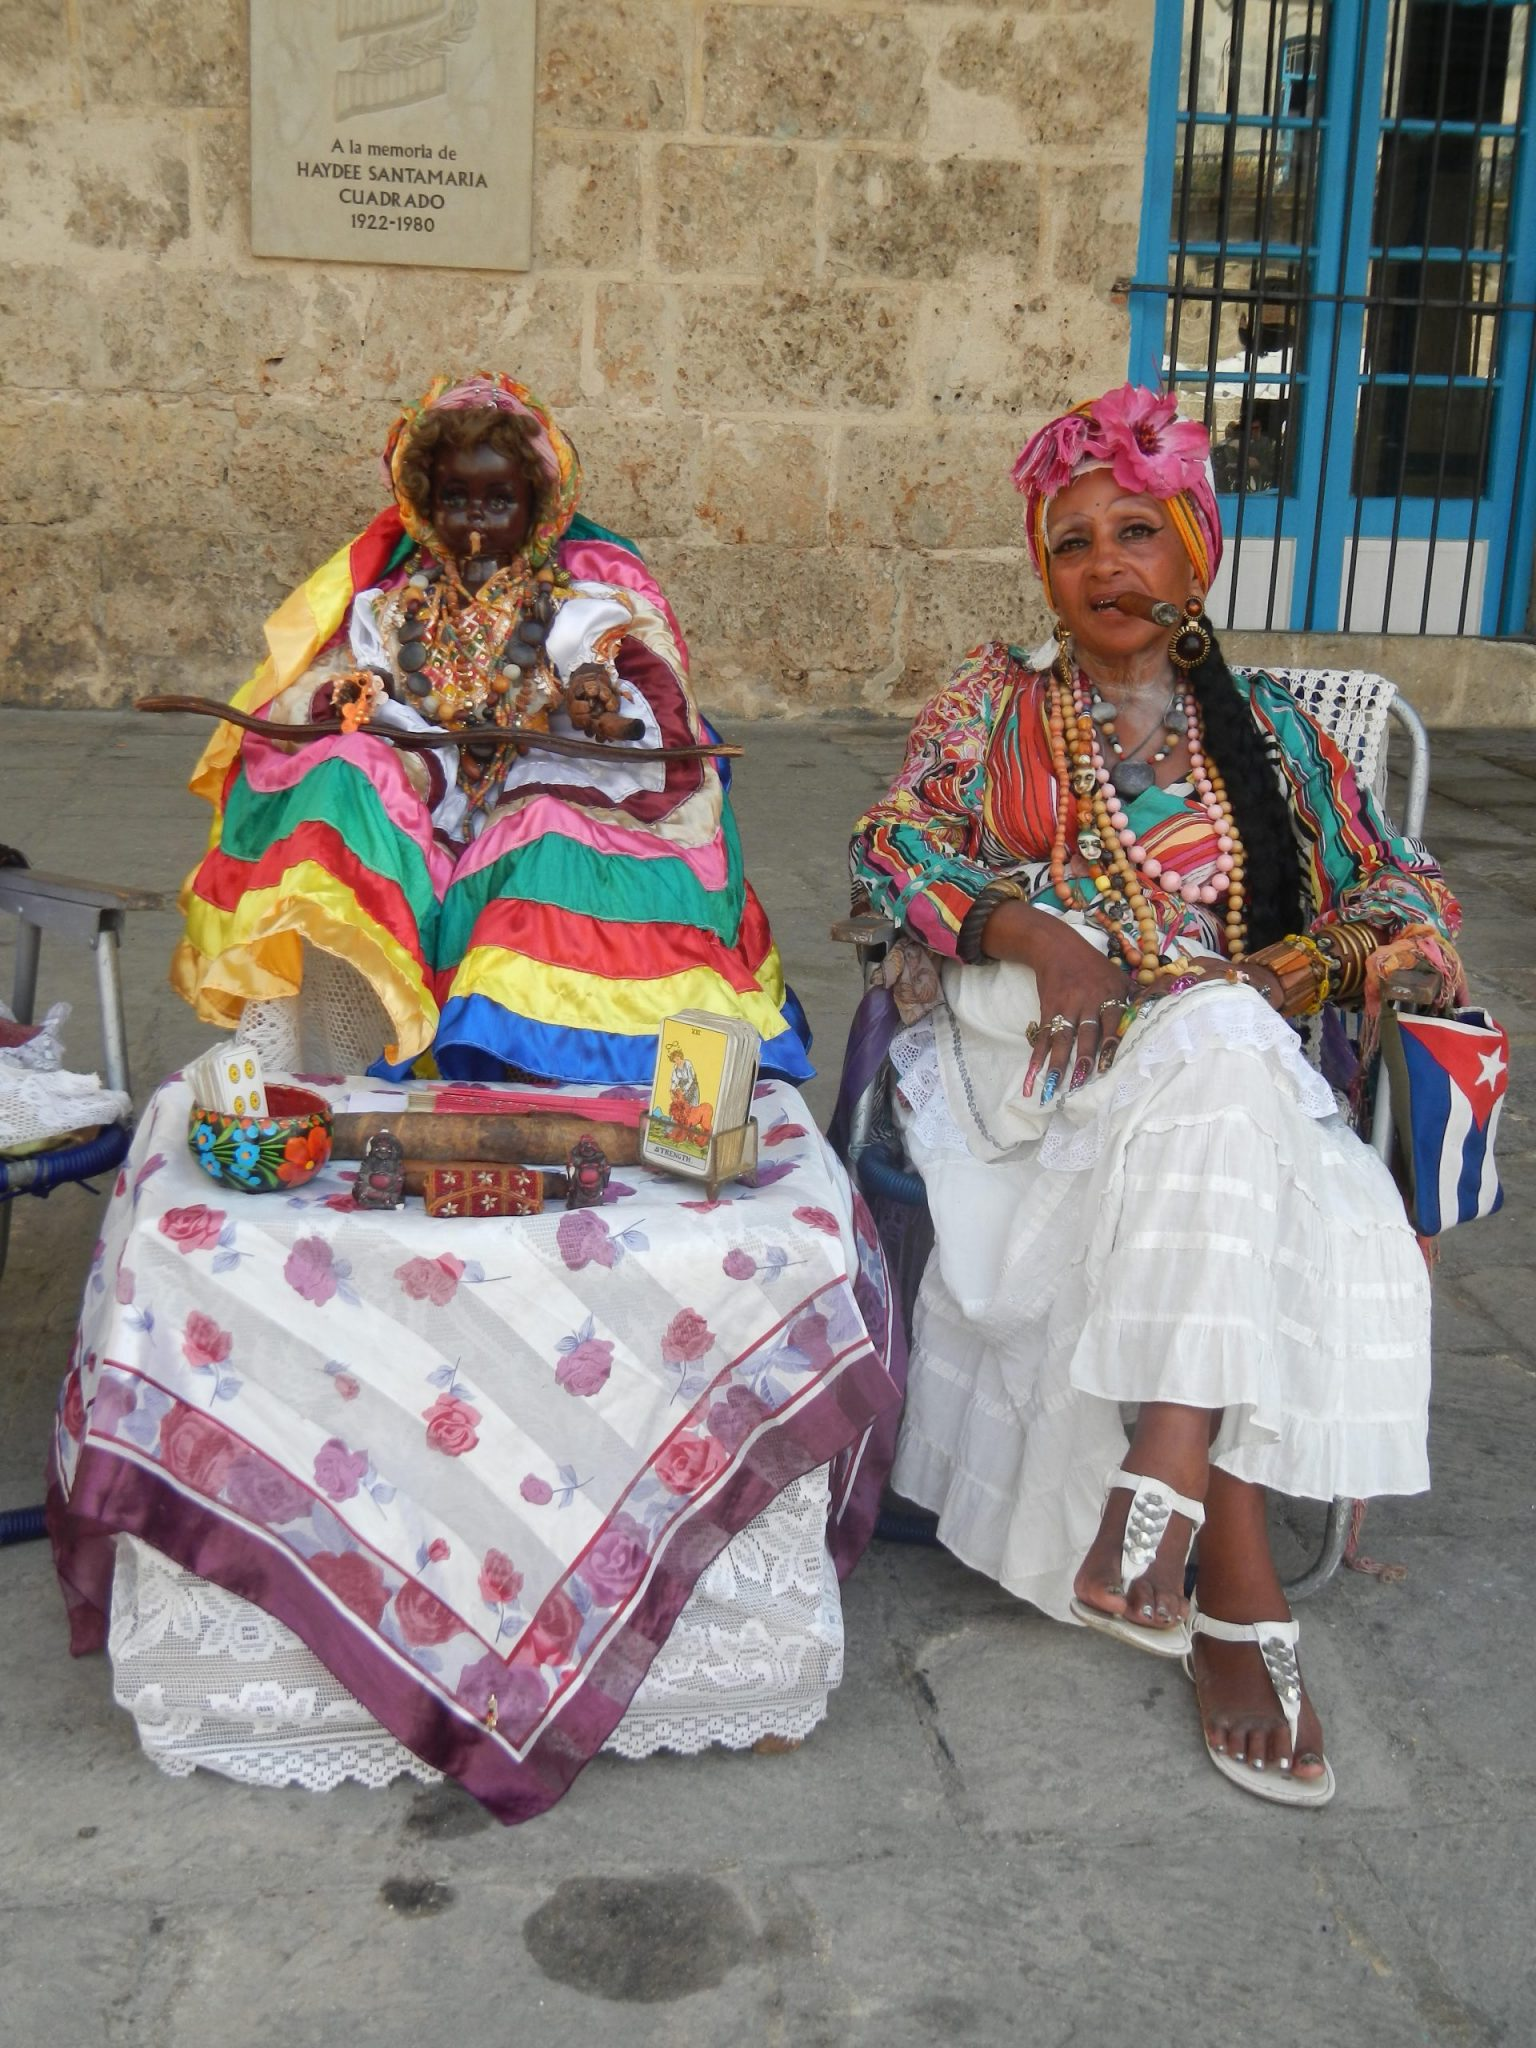 A photo of a Santera on the street